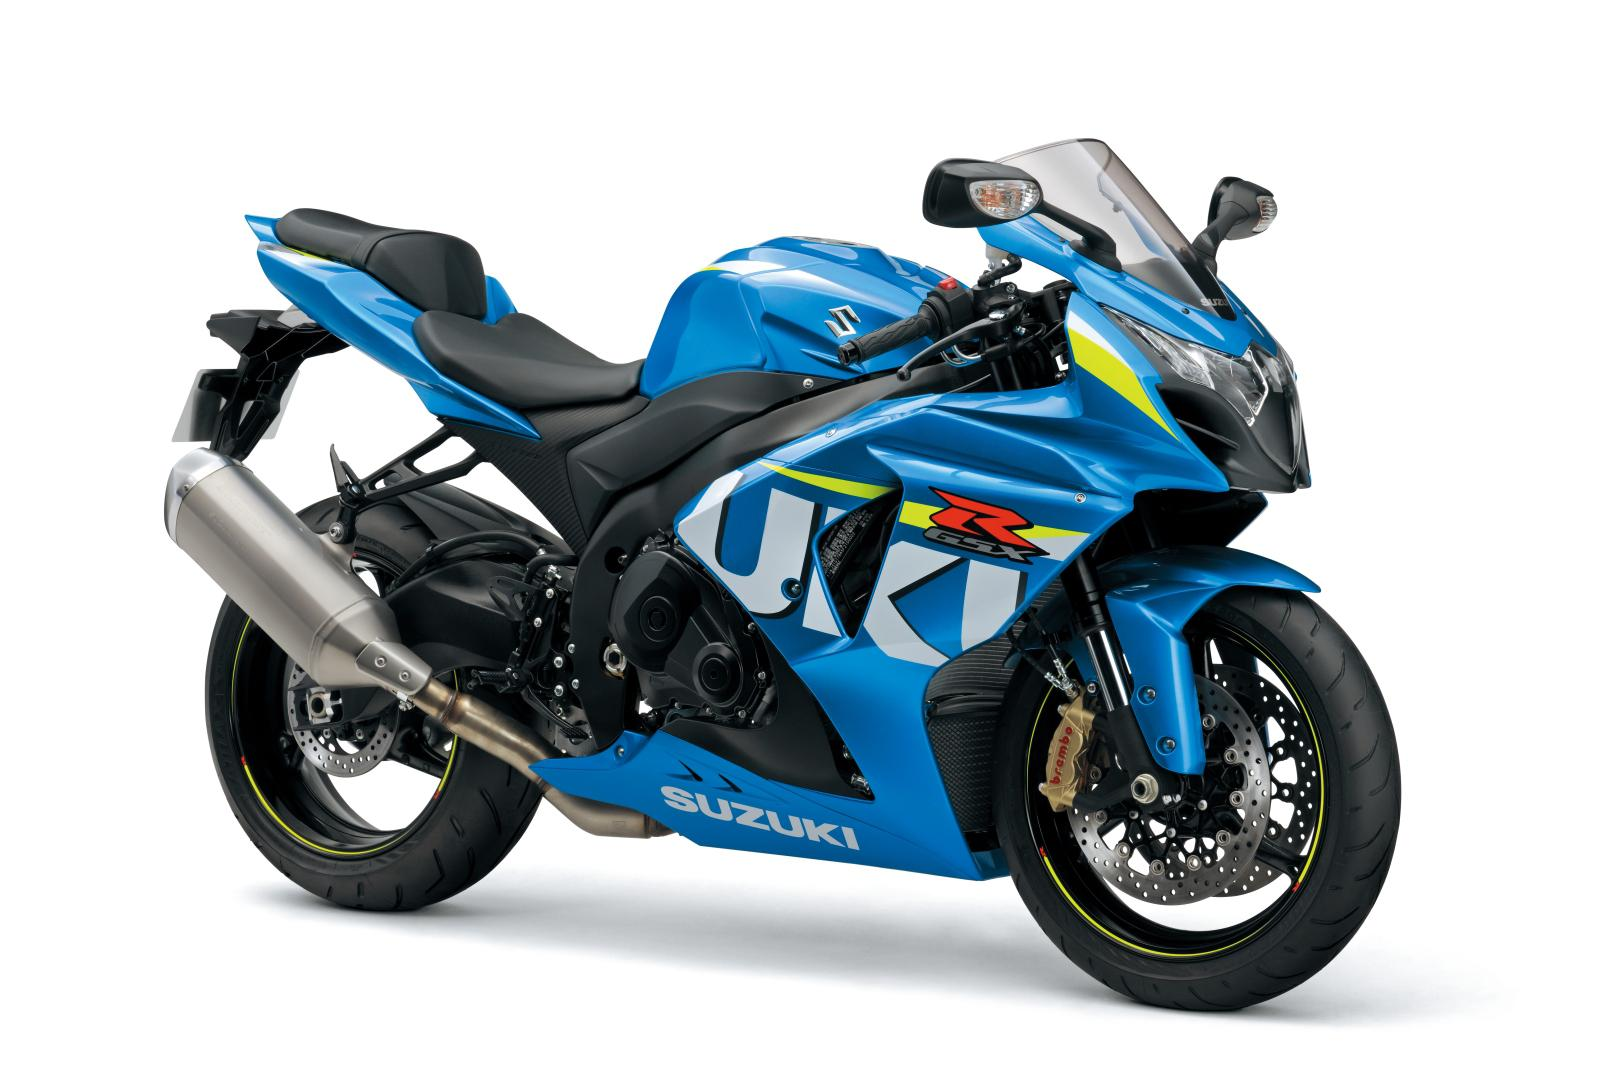 suzuki gsx r1000 modell 2015 motorrad fotos motorrad bilder. Black Bedroom Furniture Sets. Home Design Ideas